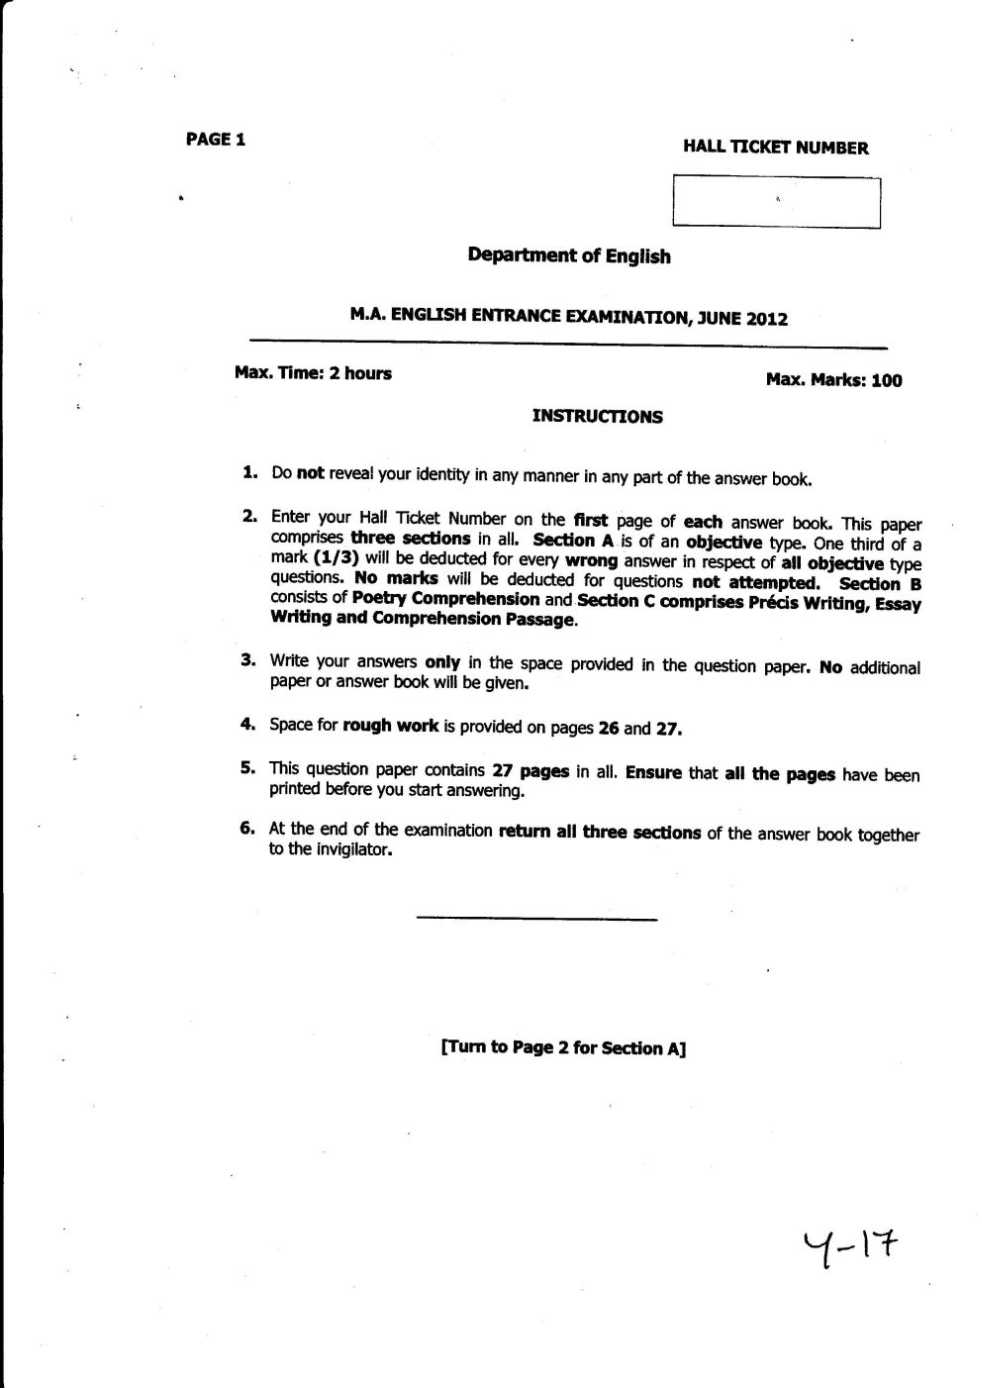 Previous year question papers of MA English entrance exam of